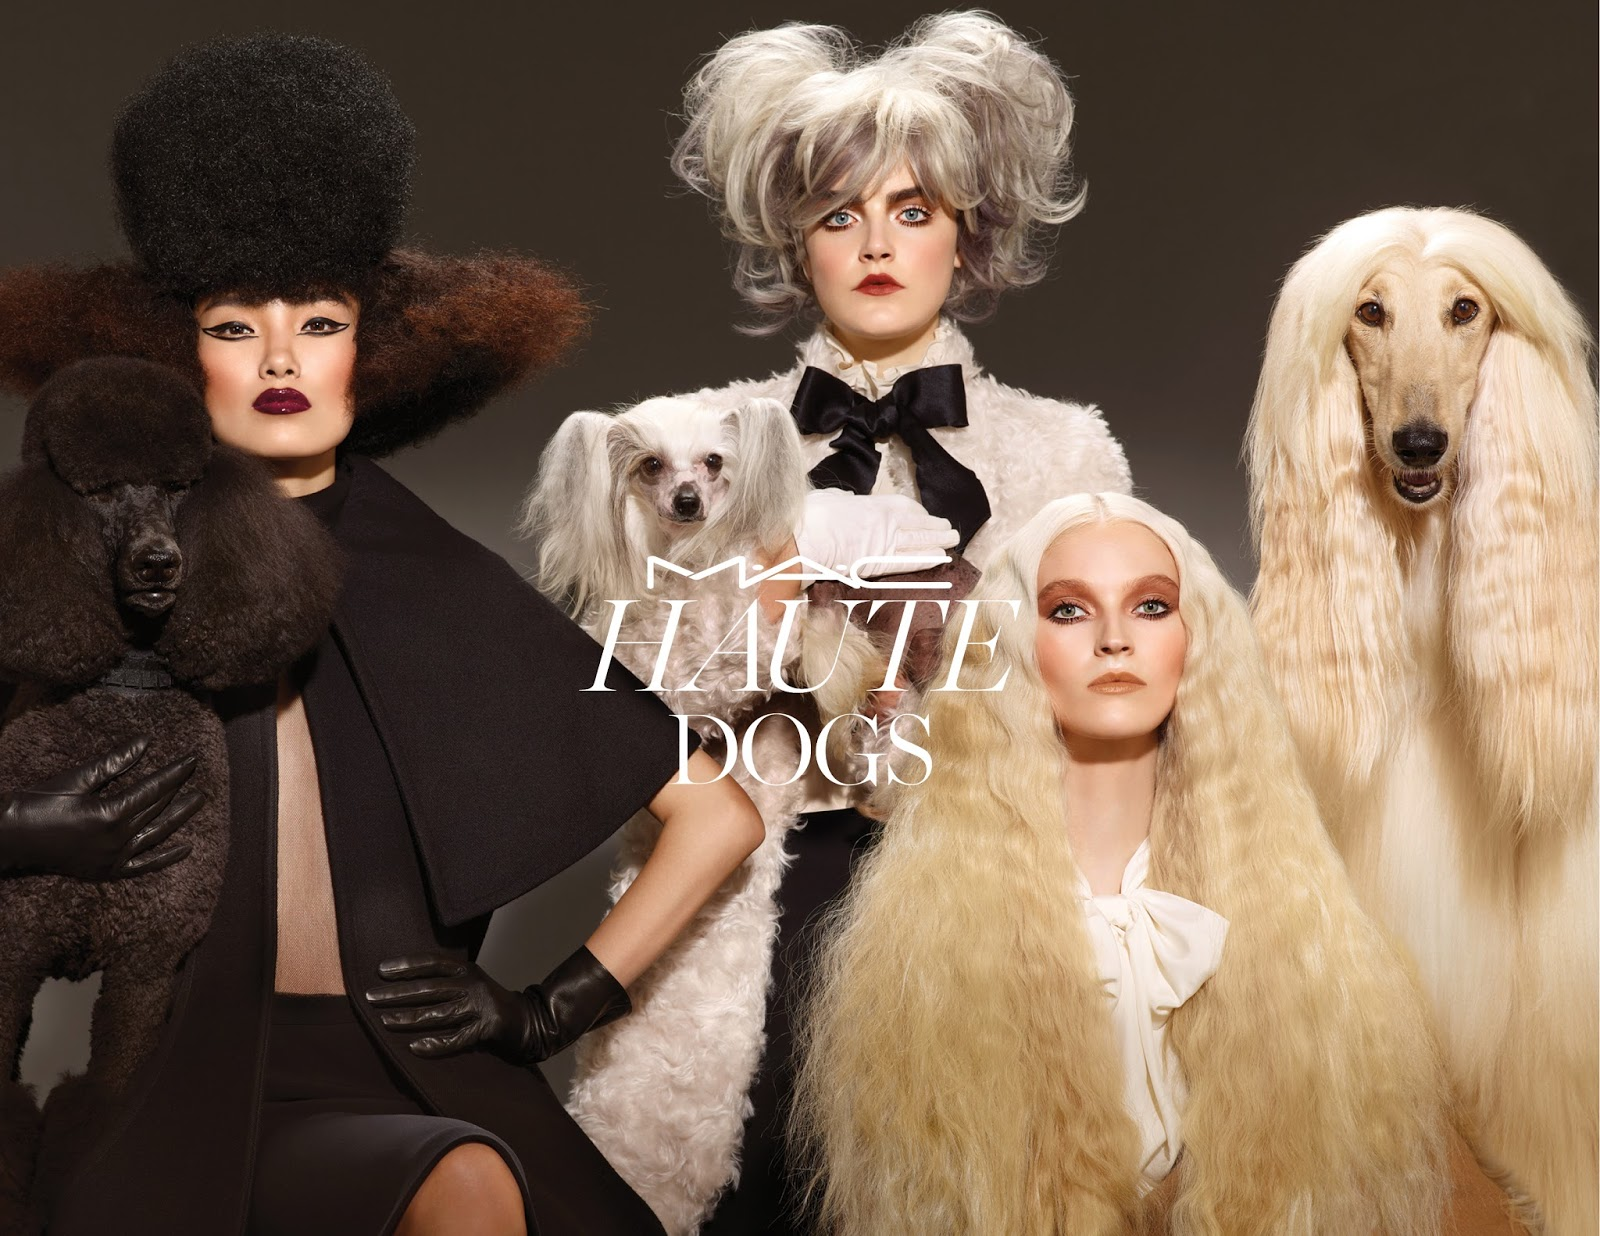 MAC Haute Dogs